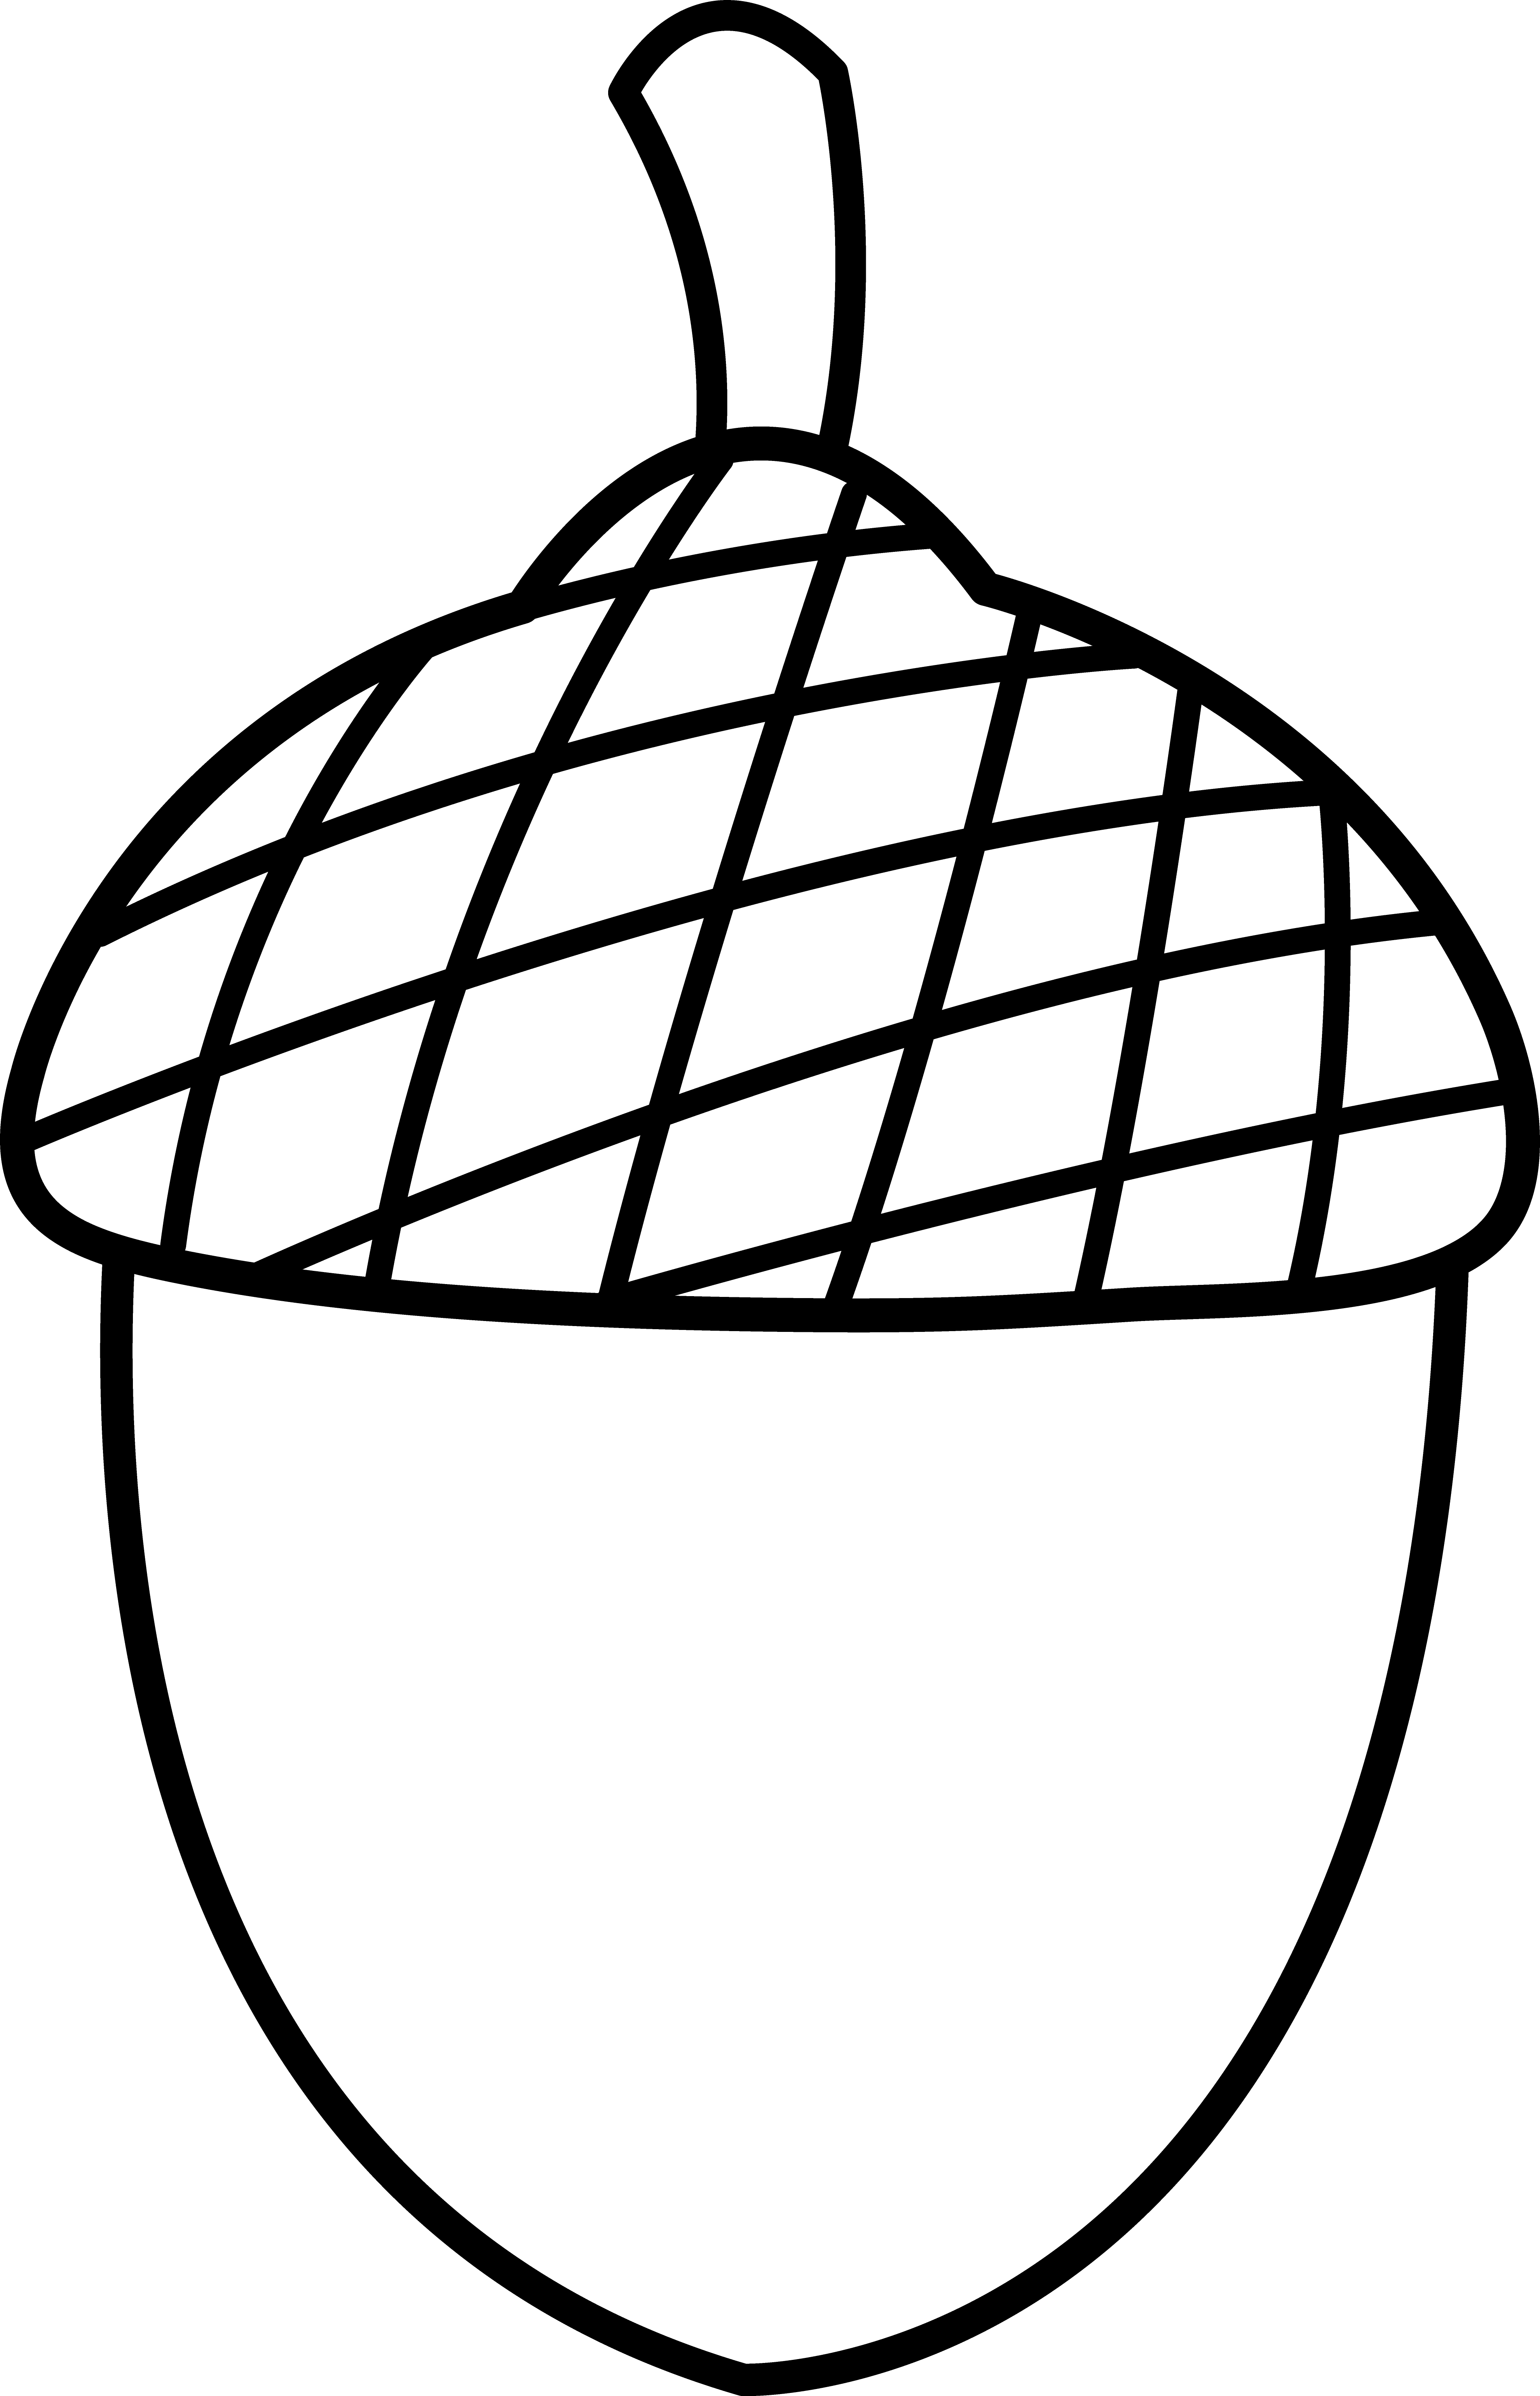 picture royalty free download Acorn clipart. Black and white